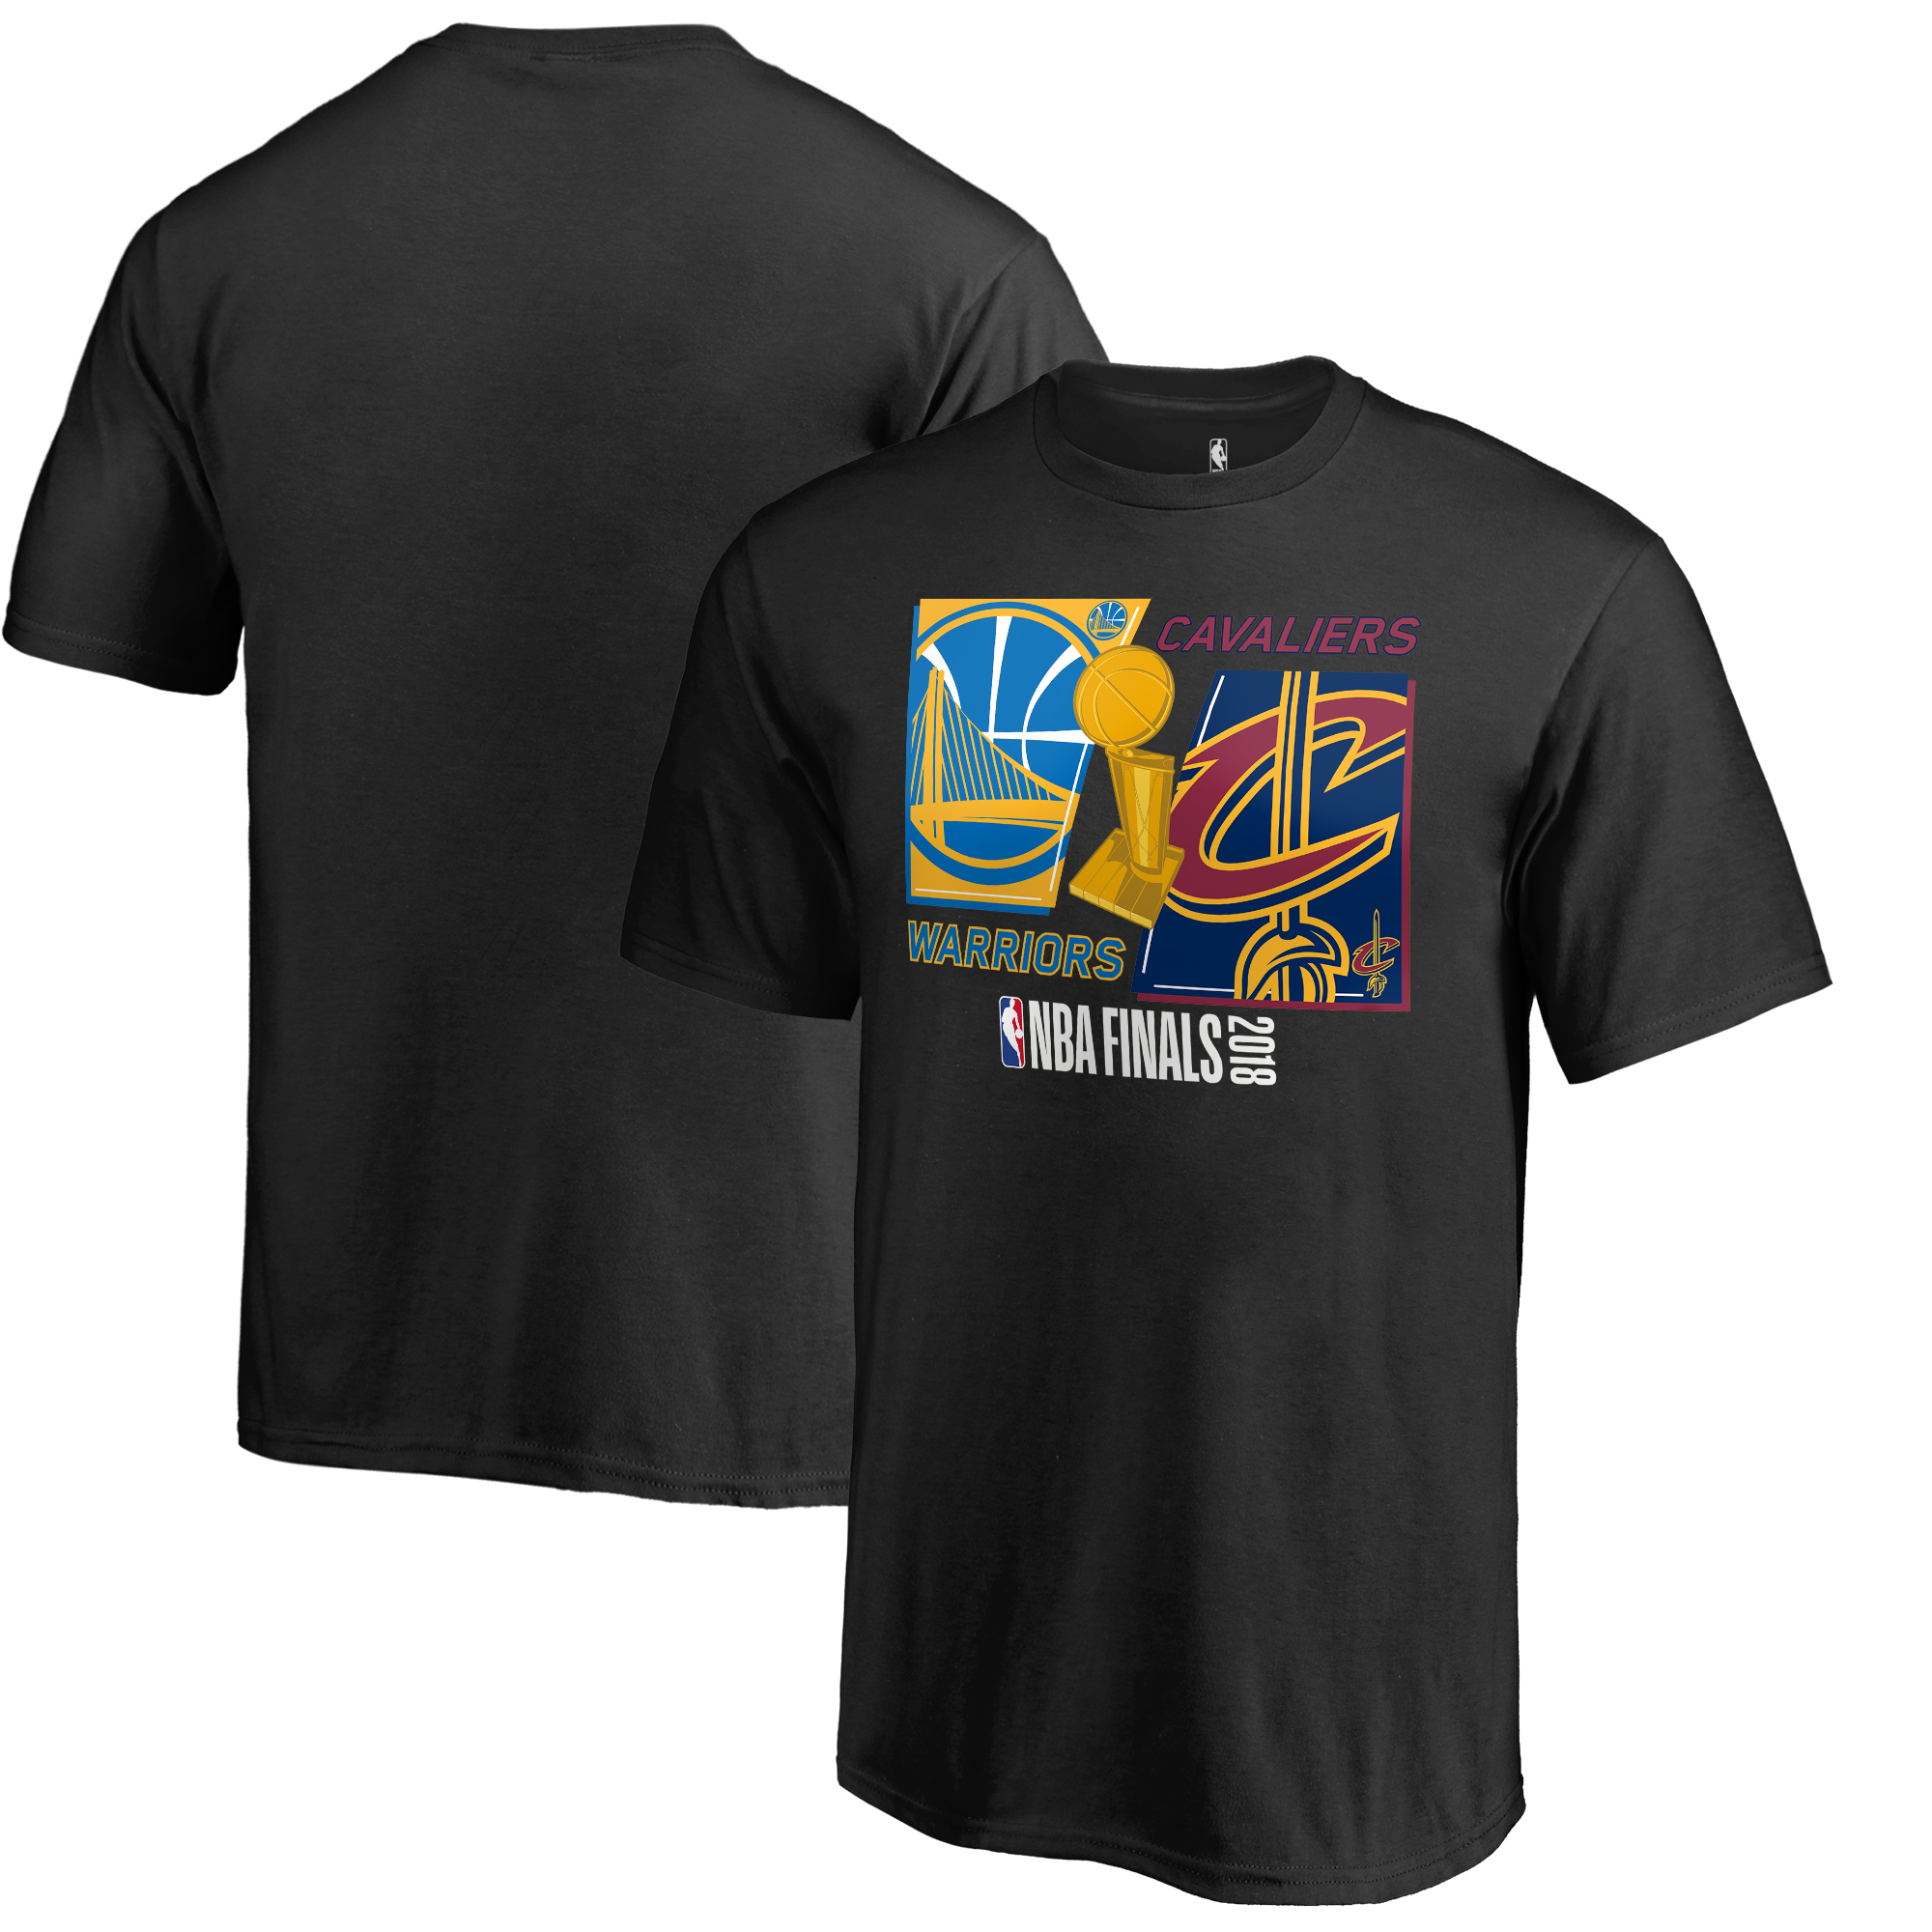 Golden State Warriors vs. Cleveland Cavaliers Fanatics Branded Youth 2018 NBA Finals Bound Dueling Over and Back T-Shirt - Dark Gray